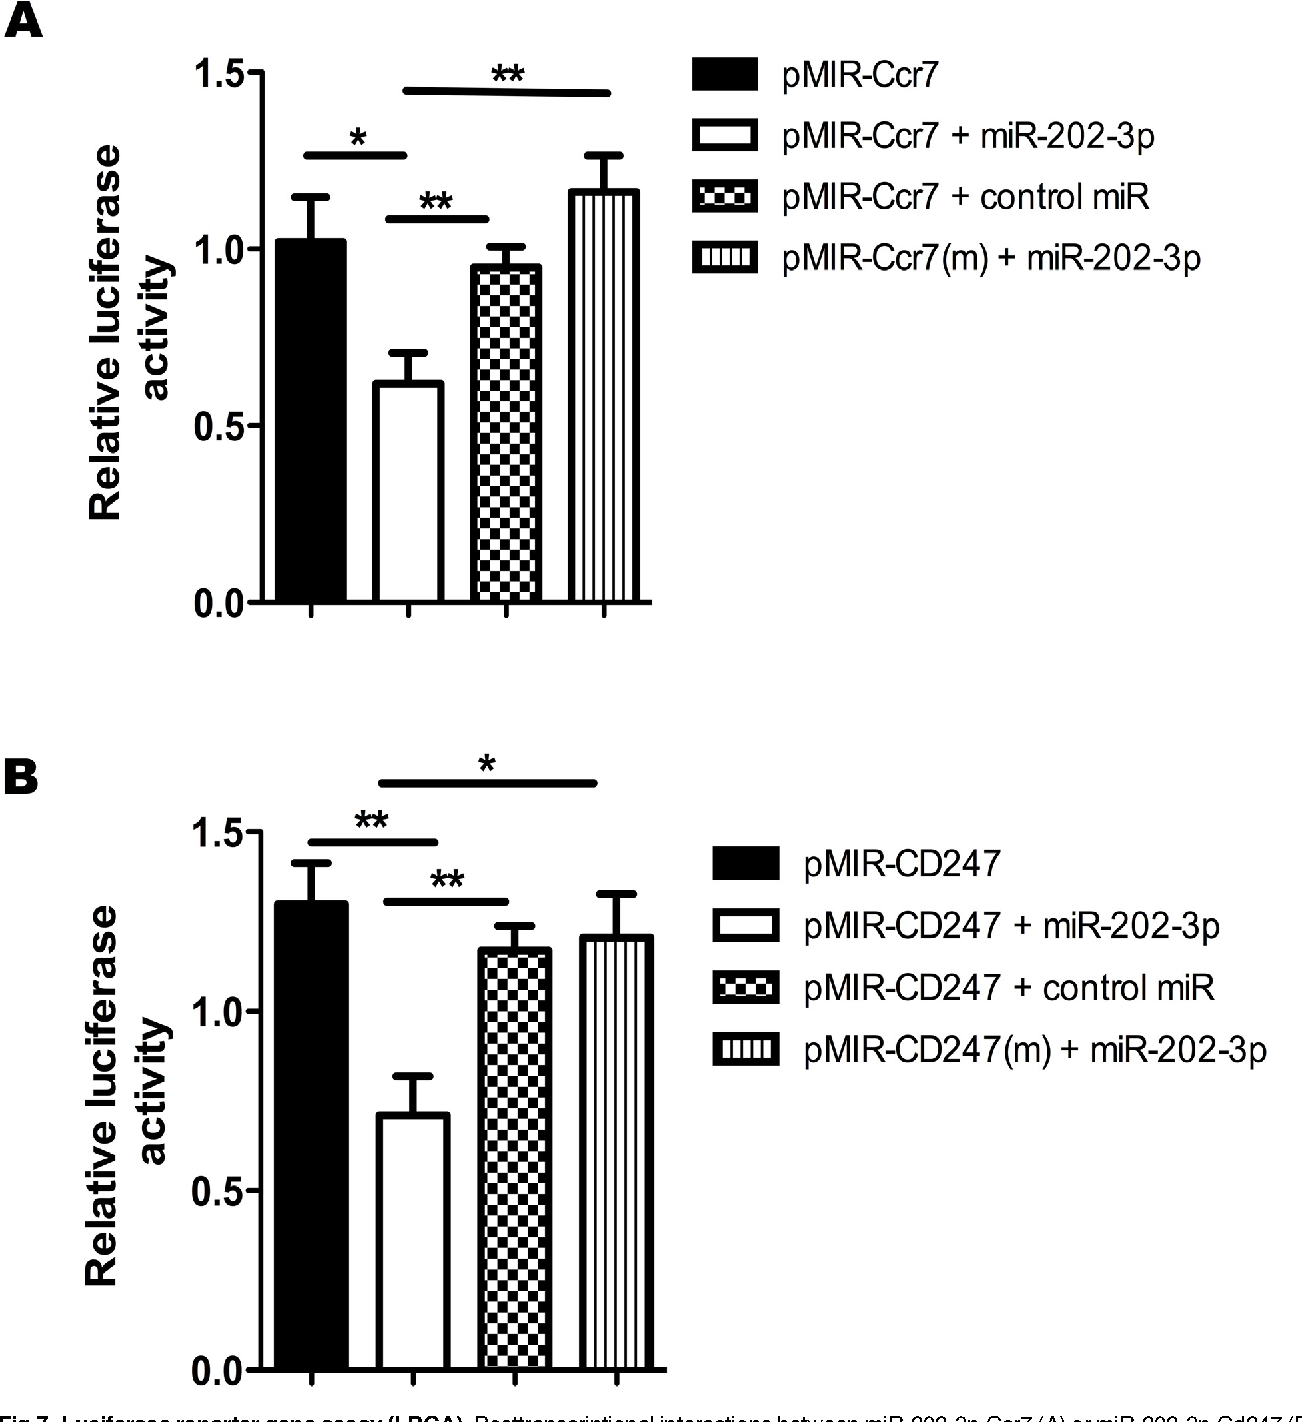 Fig 7. Luciferase reporter gene assay (LRGA). Posttranscriptional interactions between miR-202-3p-Ccr7 (A) or miR-202-3p-Cd247 (B) were assessed by LRA.pMIR-Ccr7 or pMIR-Ccr7(m) and pMIR-Cd247 or pMIR-Cd247(m) 3´ UTR luciferase plasmid constructs were transfected into human HEK-293T cells. Cotransfections with miR-202-3p or control (scrambled) miRNA were also performed to show the specificity of the miRNA, and co-transfections with the mutant (m) plasmid constructs were performed to show specificity of the 3´ UTR for the interactions. The data are presented as the means and standard error of mean (SEM). The differences were evaluated by one-way ANOVA followed by Bonferroni´s test, and p < 0.05 was considered statistically significant when the wild-type 3´ UTR pMIR was compared to the mutant (m) 3´ UTR sequence in the presence of the respective miRNAmimic.